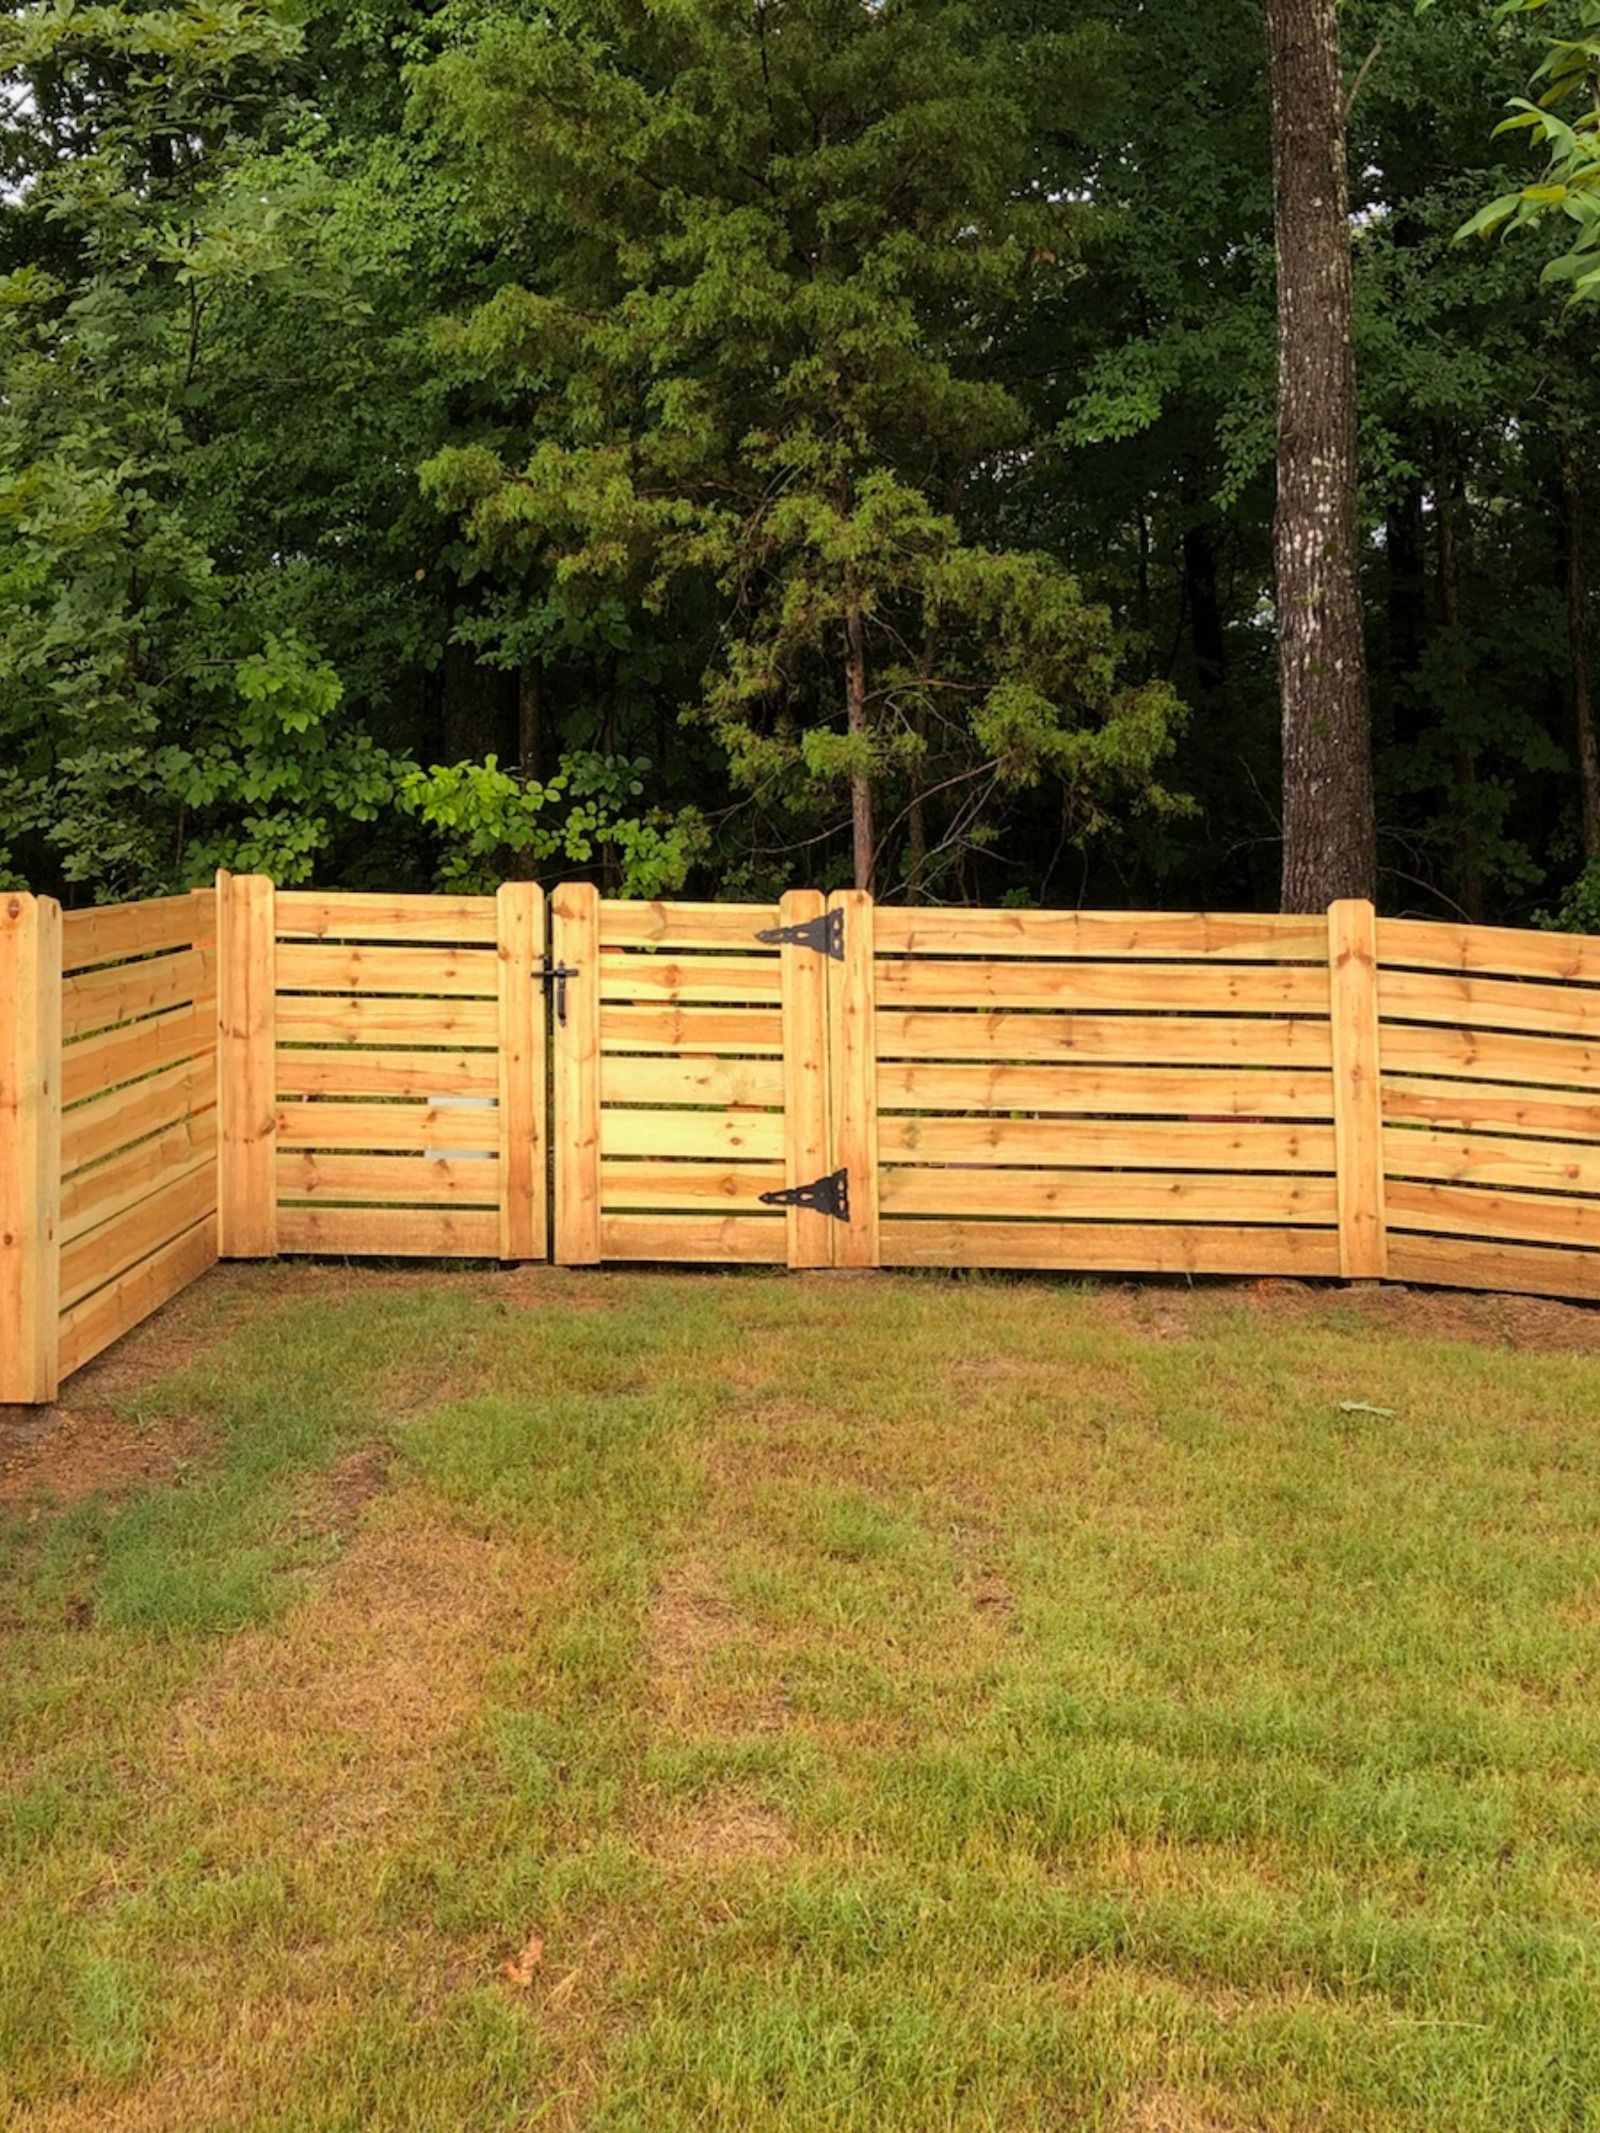 4ft Tall Horizontal With Spacing Fence Wood Fence Privacy Fence